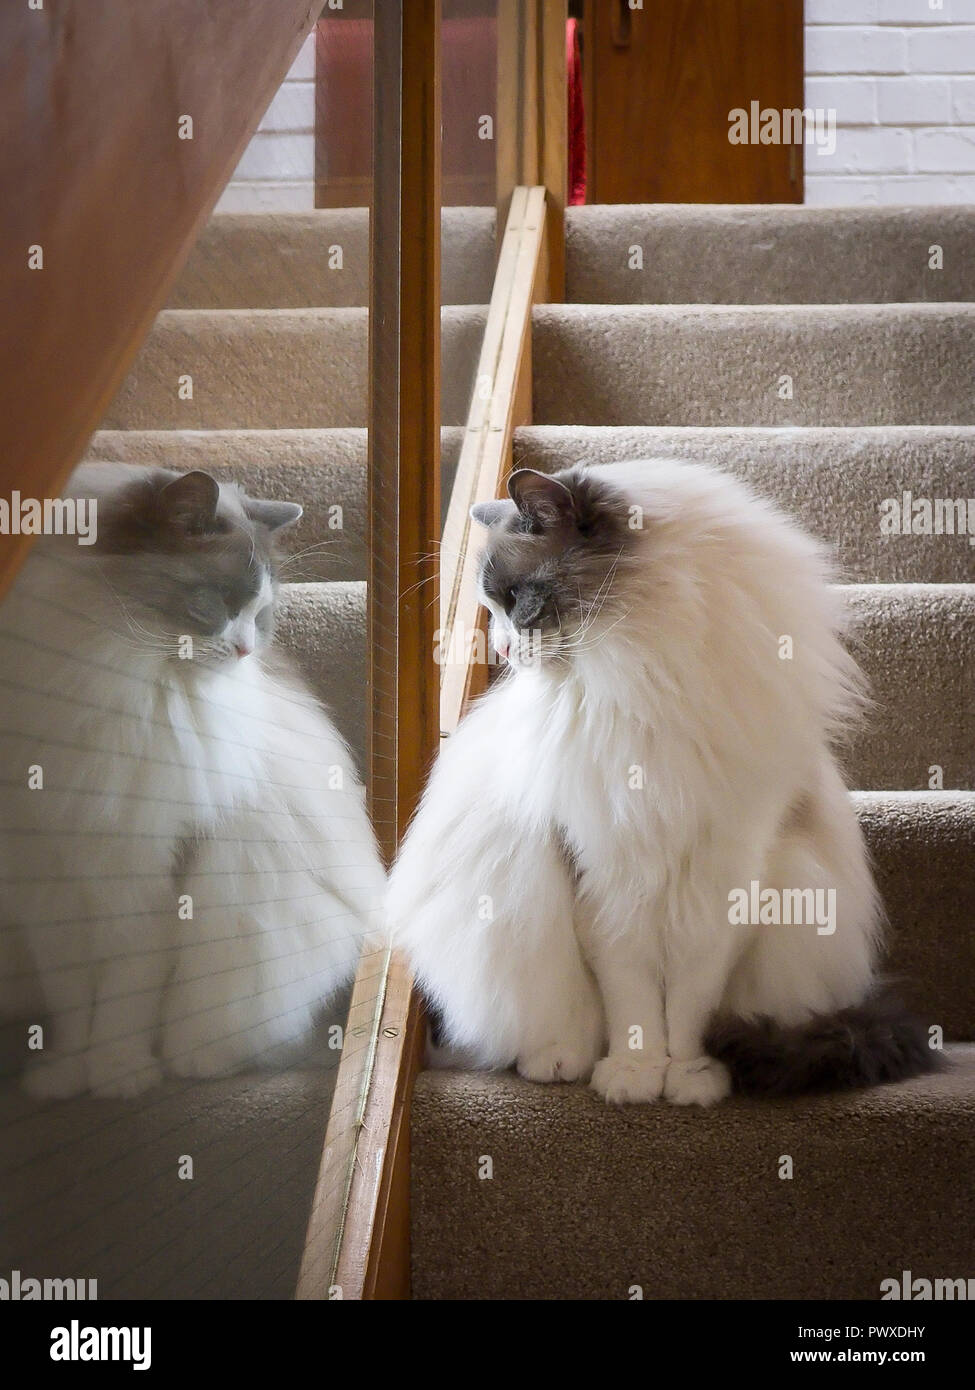 A male Ragdoll cat in pensive mood on stairs with his reflection in a glass panel in UK - Stock Image